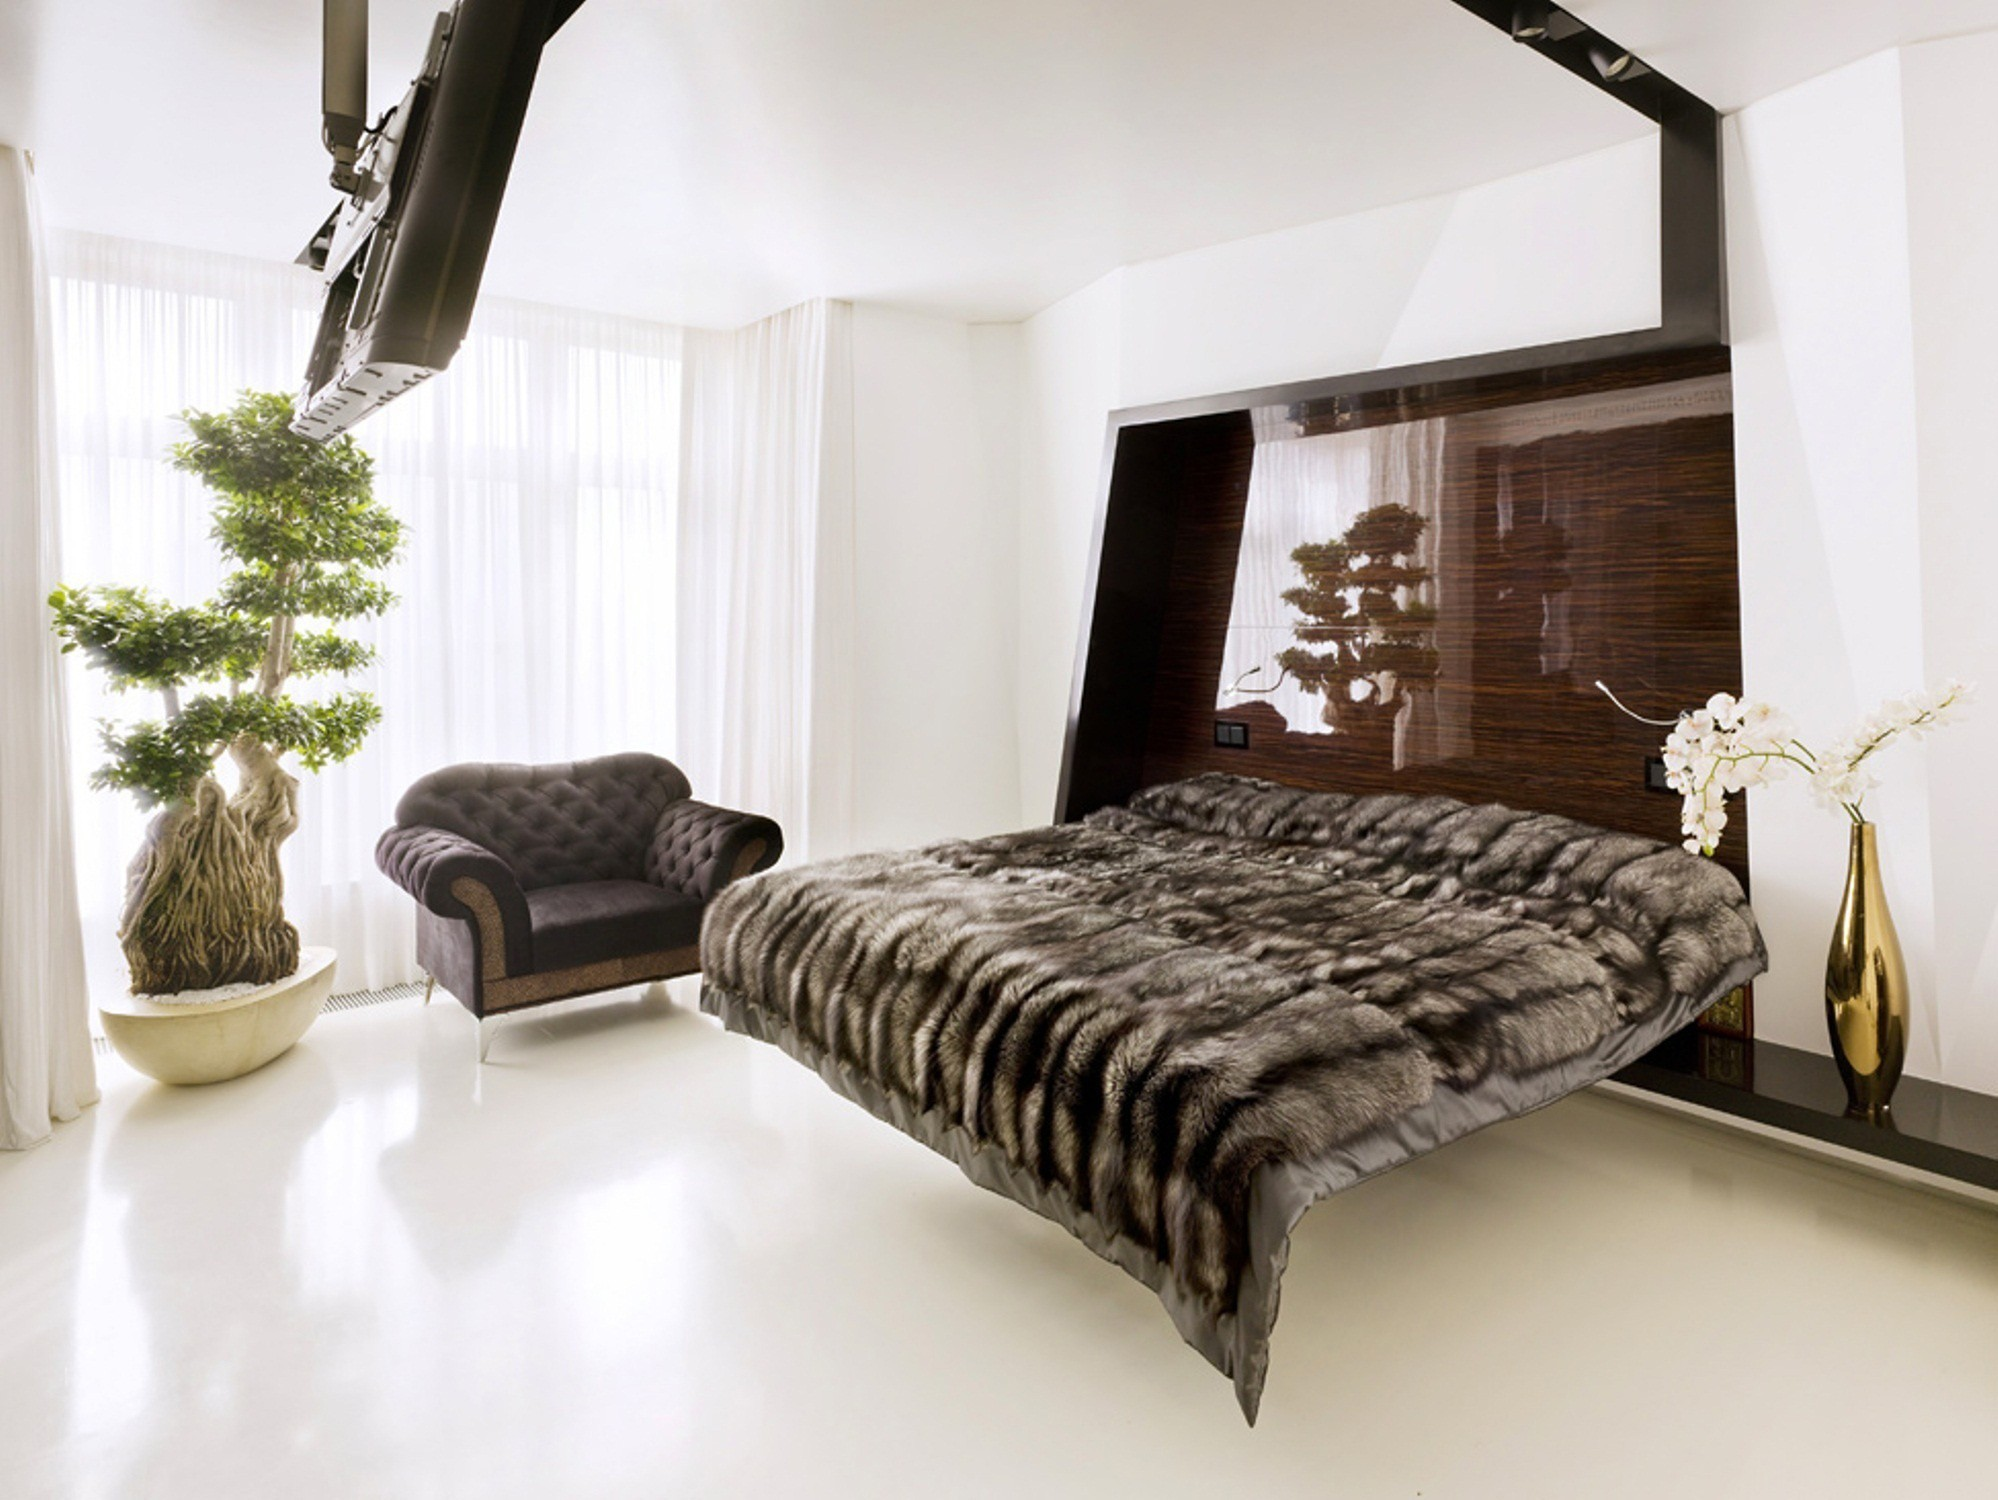 design beds interior wallpaper